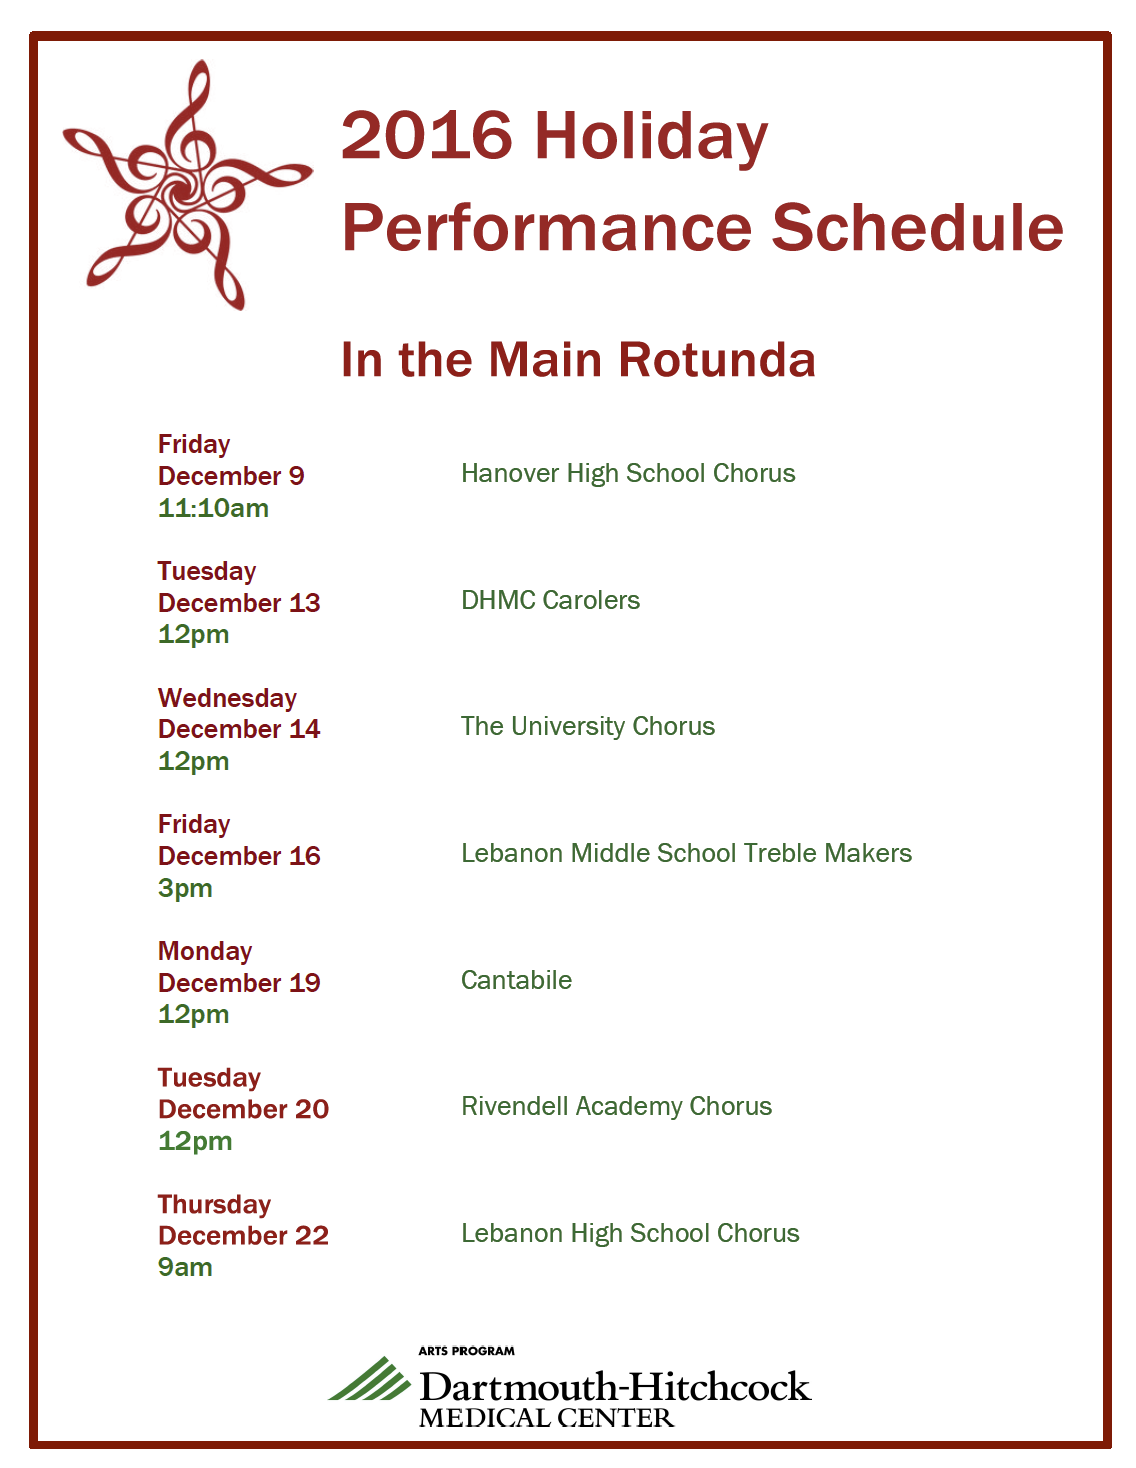 DHMC Holiday Performance Schedule 2016